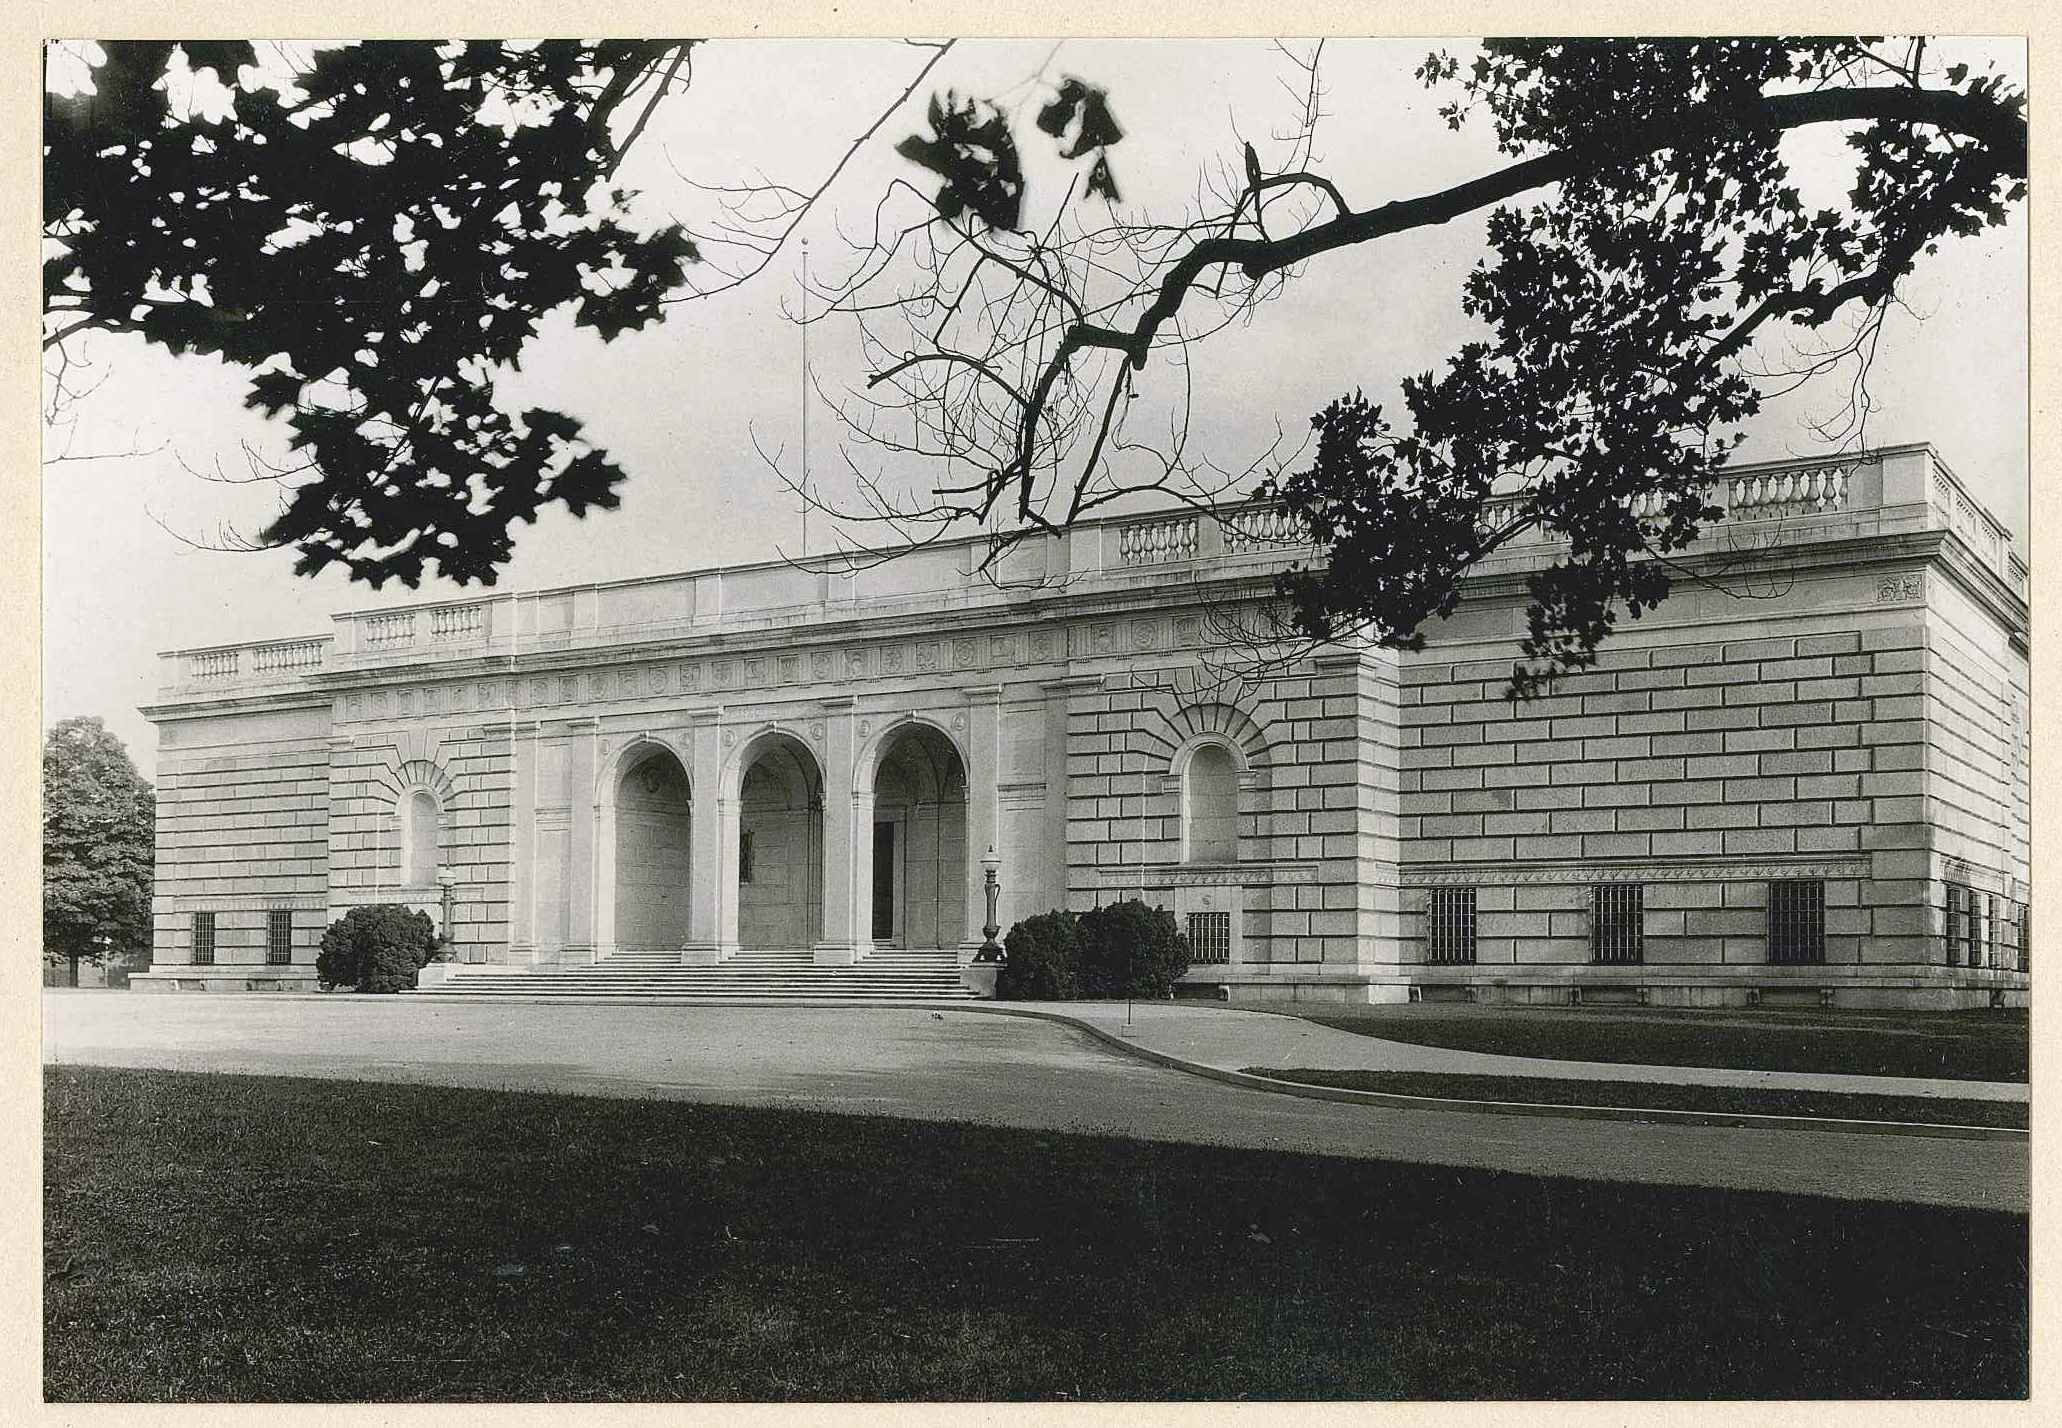 Freer Gallery of Art, by Richard Southall Grant, 1927. Accession 03-018: Freer Gallery of Art and Arthur M. Sackler Gallery, Central Files, 1919-1986, Box 3, Folder: GRA, Smithsonian Institution Archives.